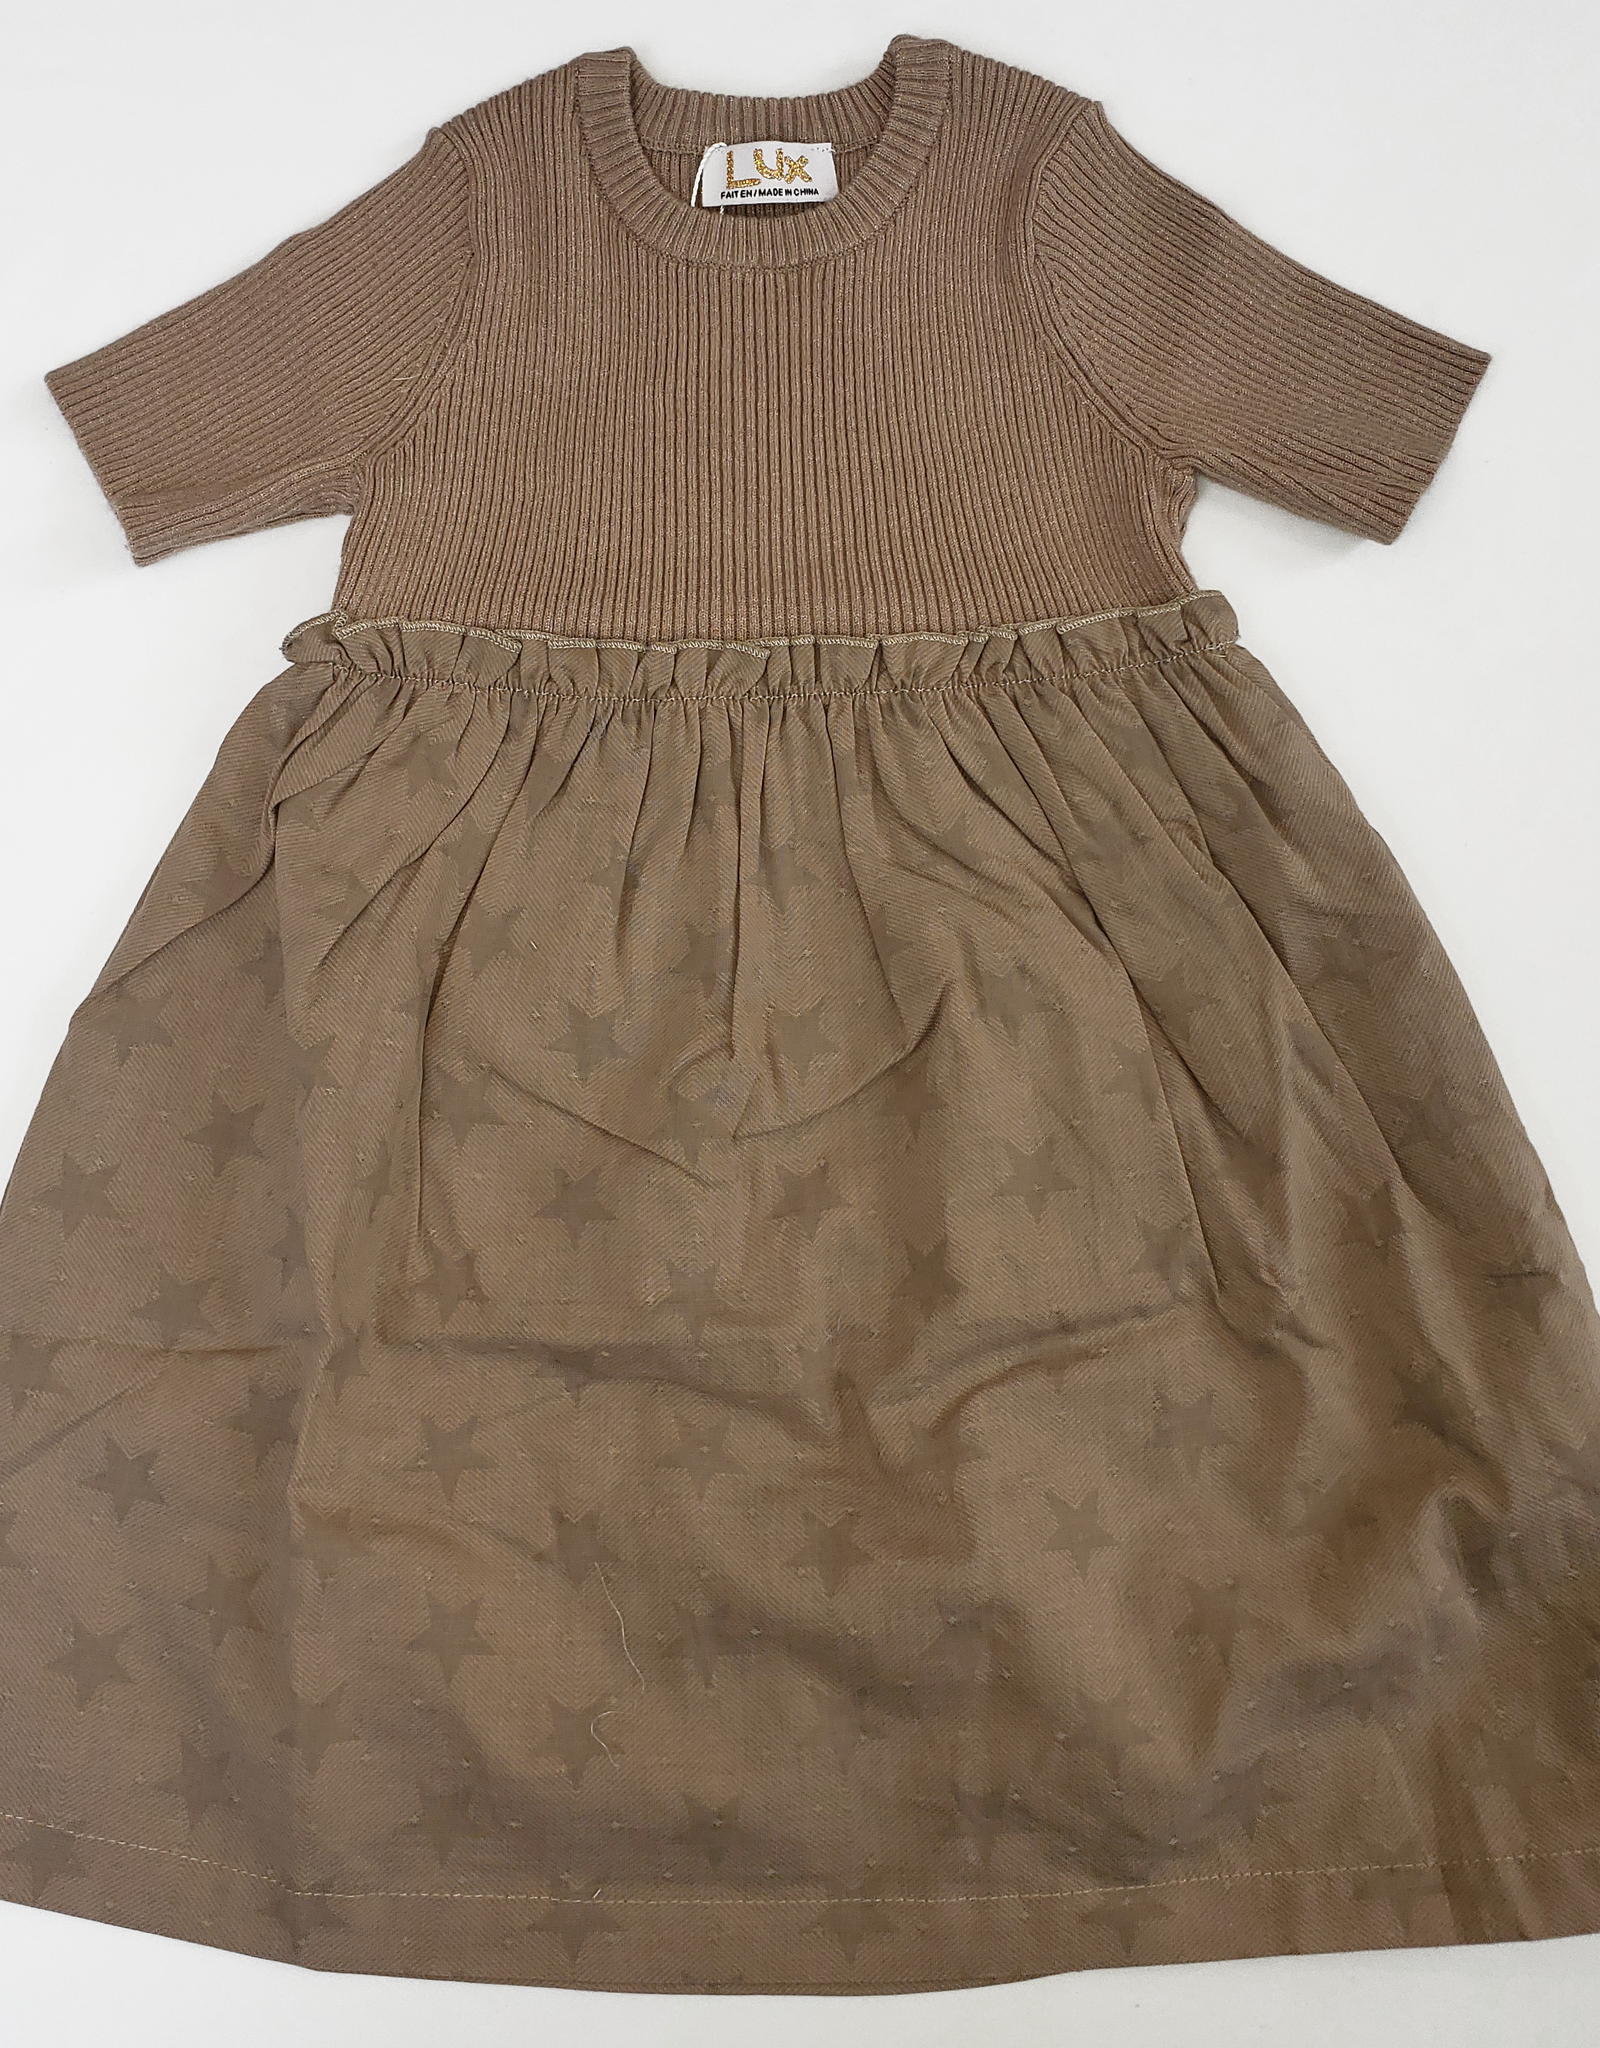 LUX LUX High-Waisted Dress with Ribbed Knit Top and Star Print Bottom